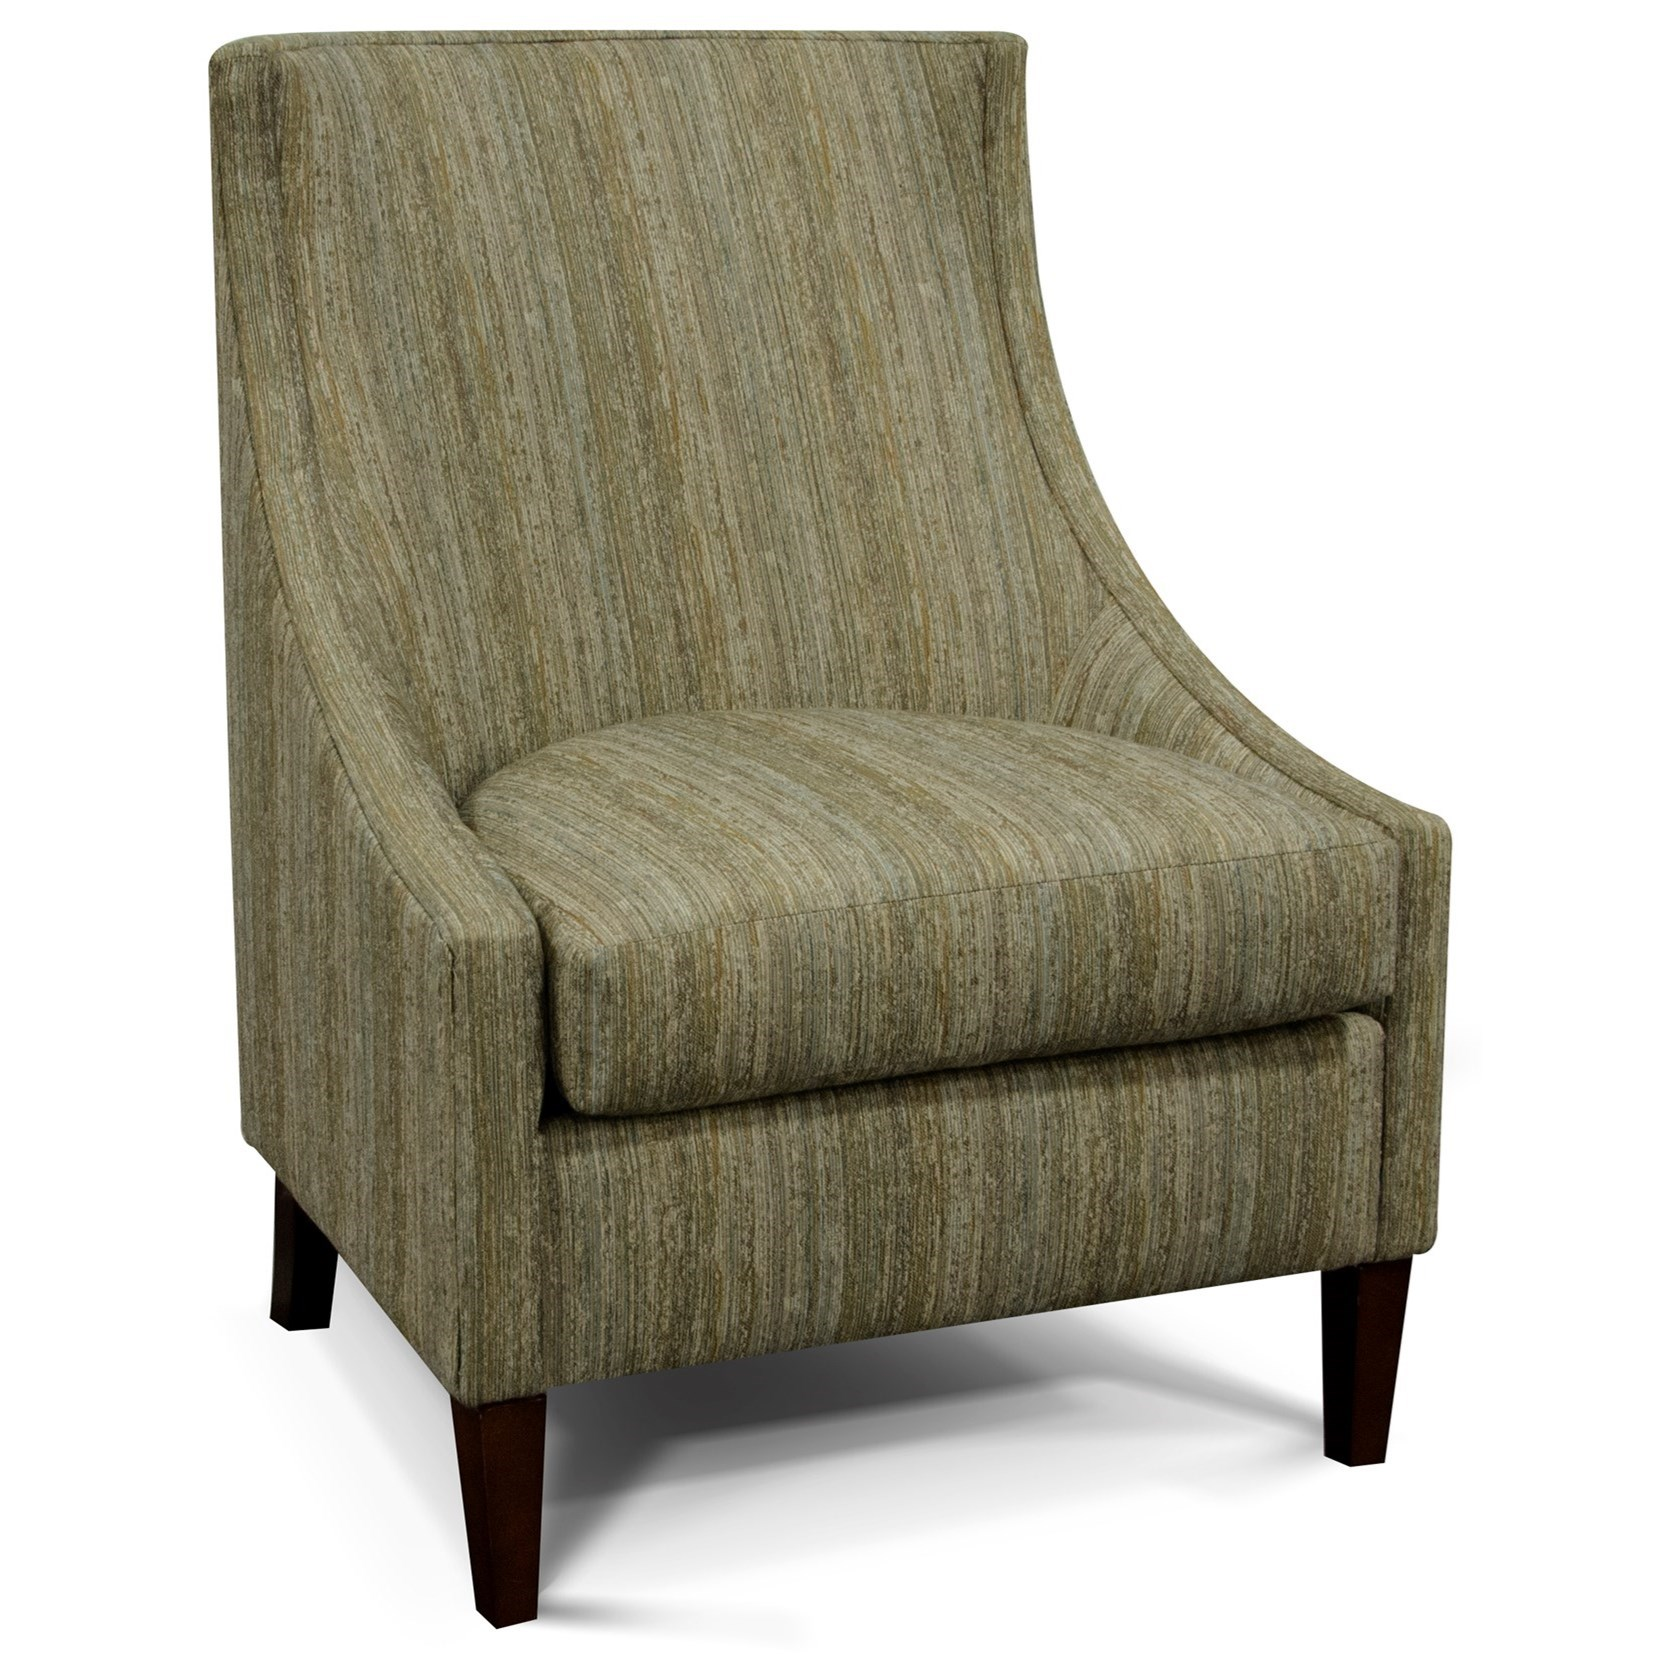 2230 Devin Chair by England at Pilgrim Furniture City